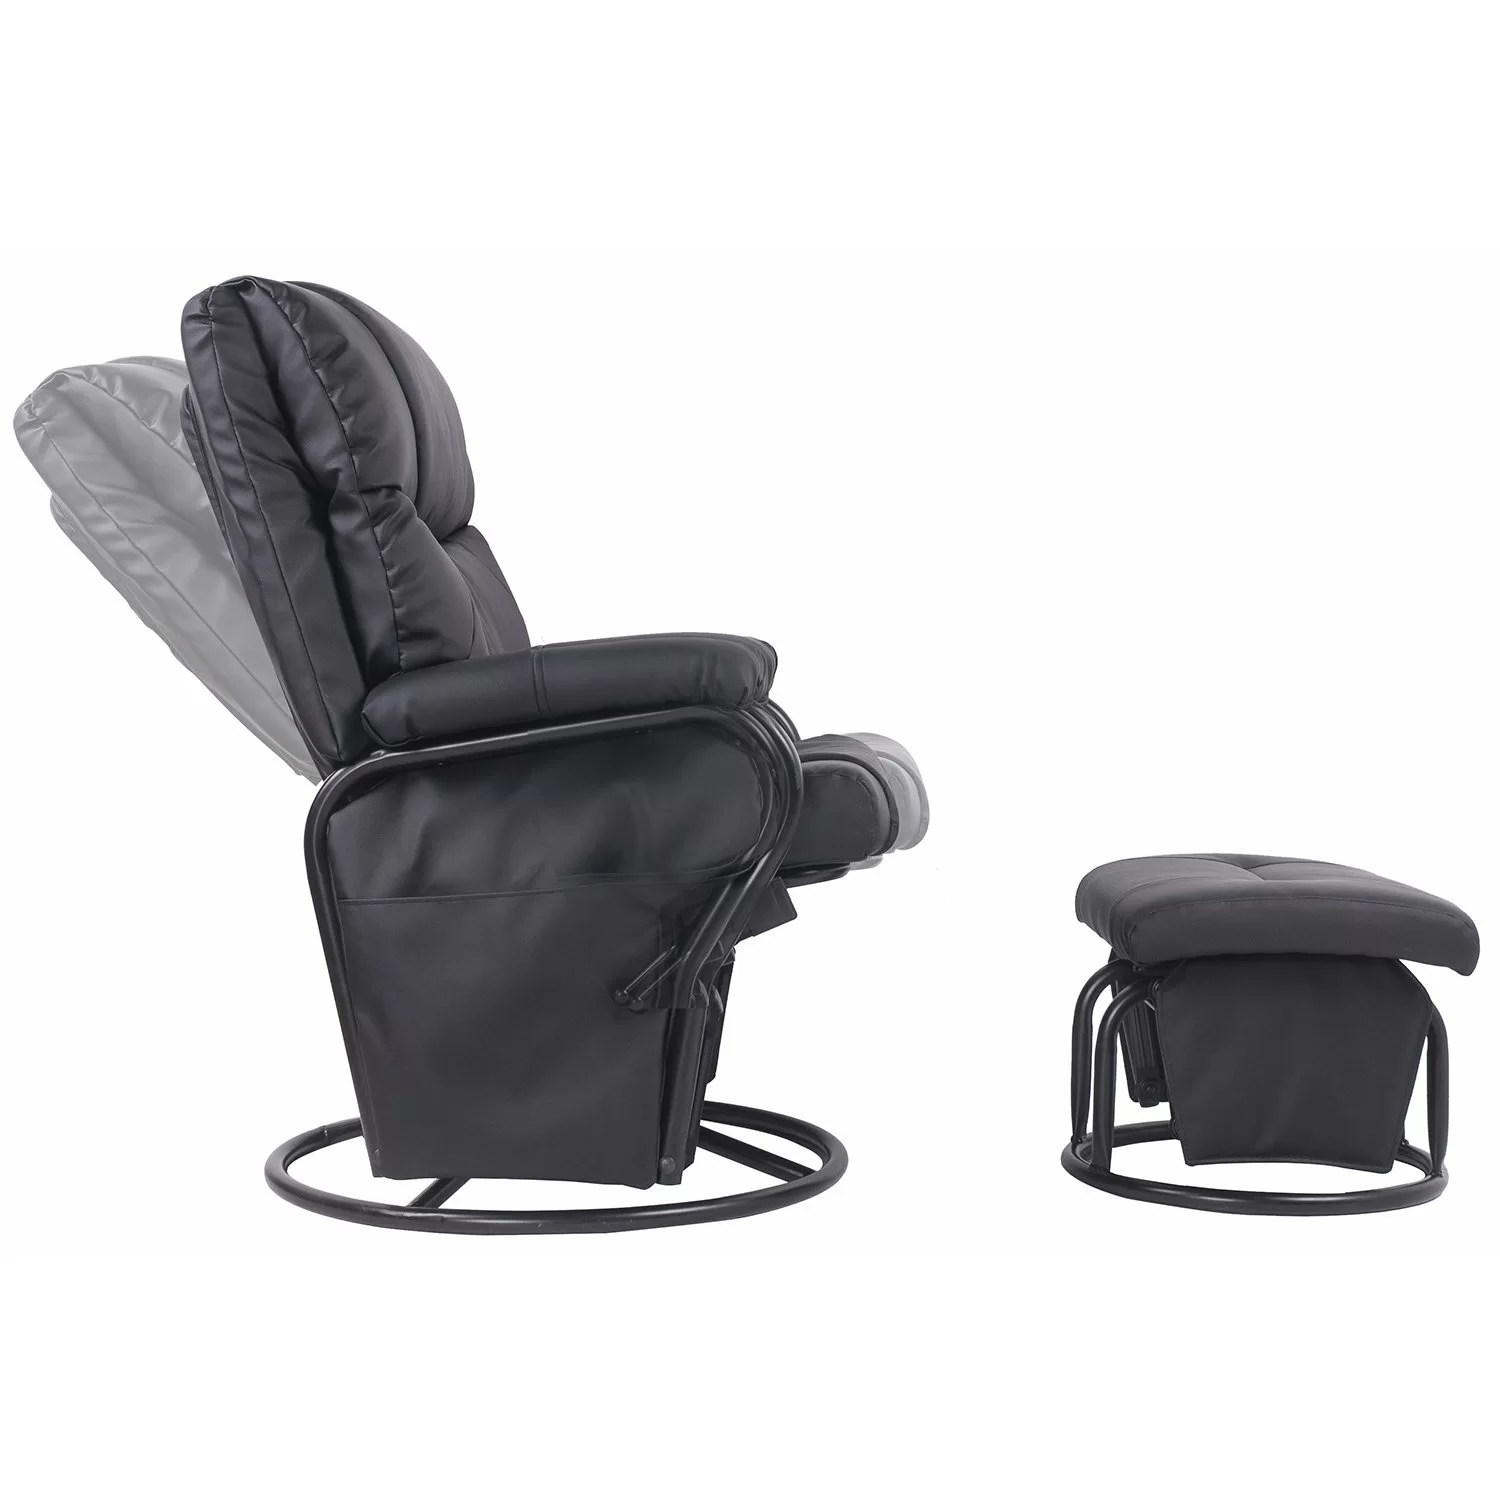 ergonomic chair and ottoman desk elegant merax swivel glider rocking recliner